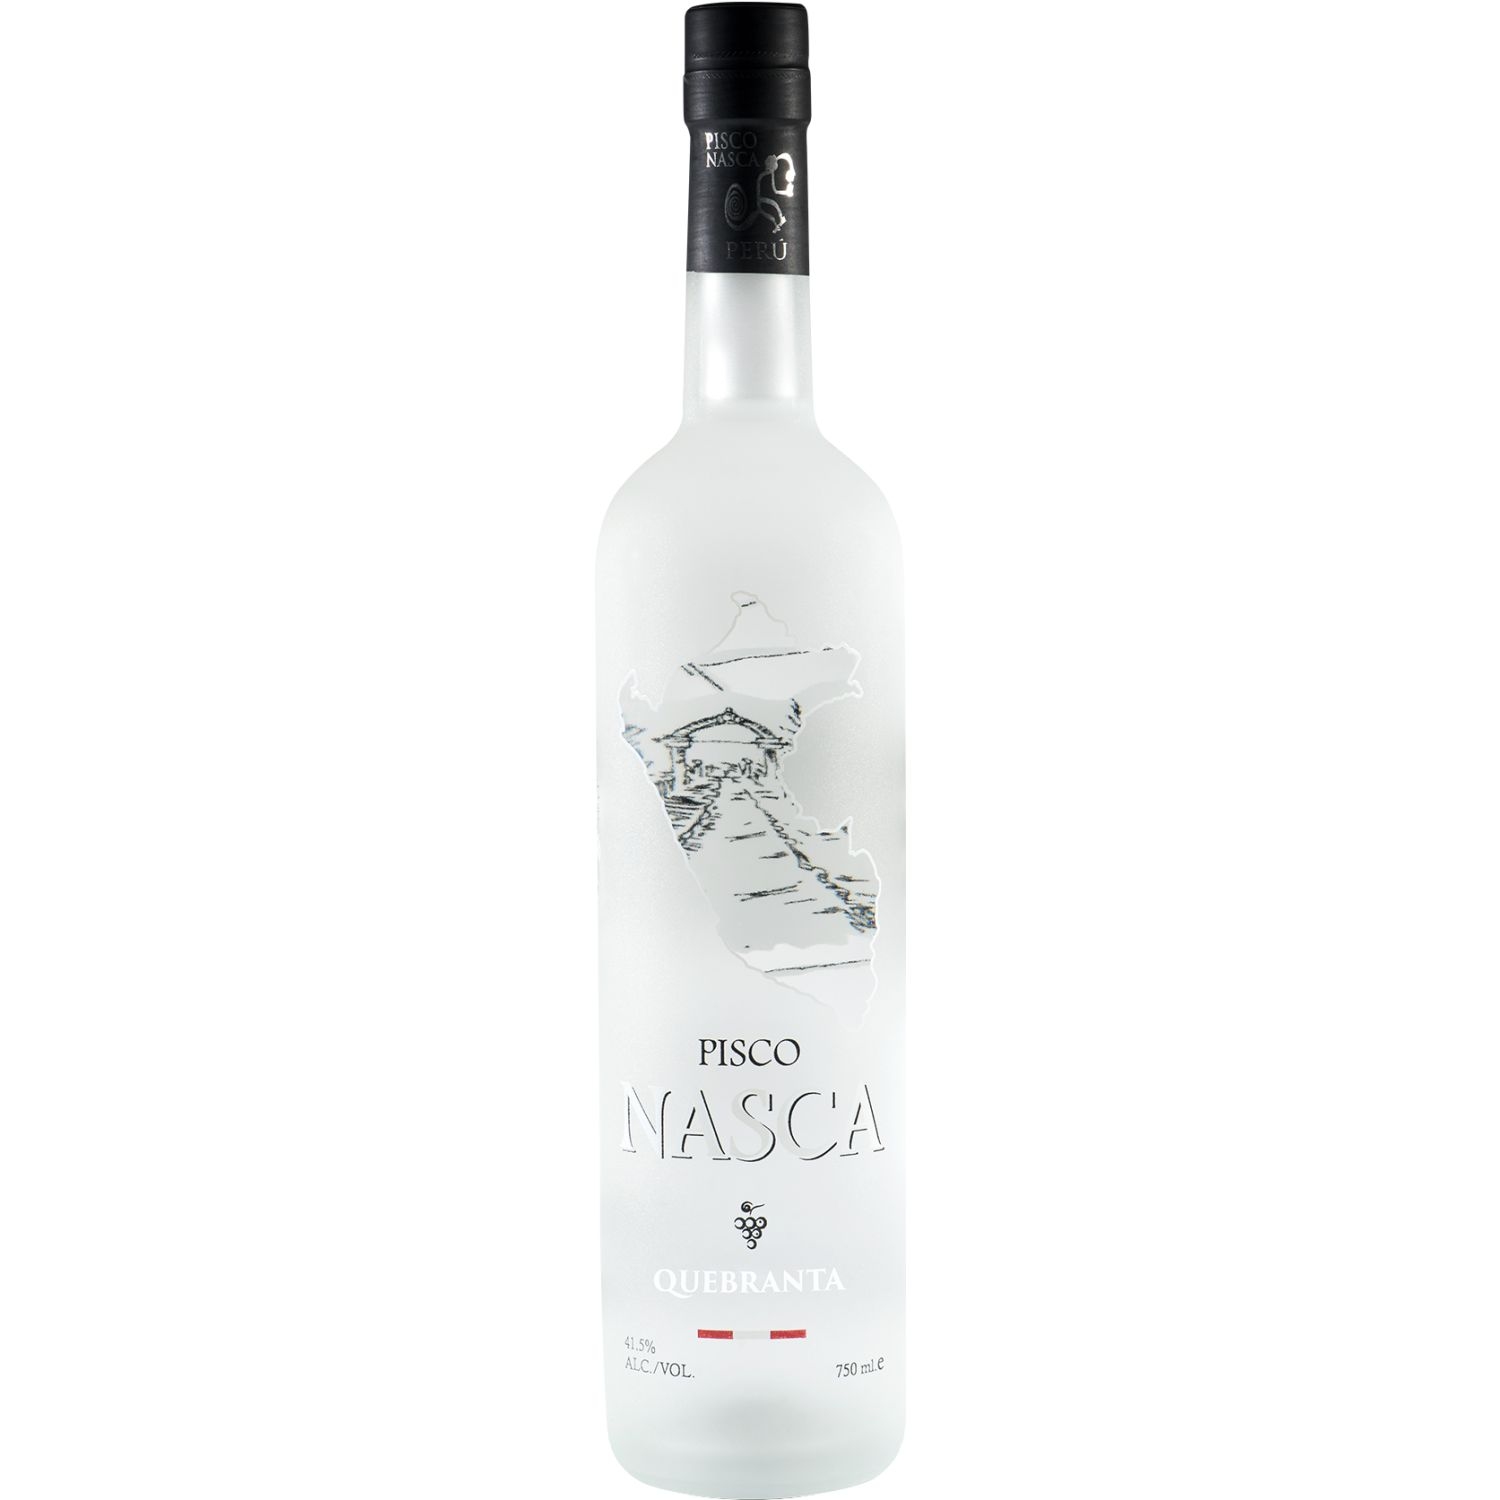 NASCA Pisco Quebranta X 750ml SIN COLOR Brandy y aguardientes